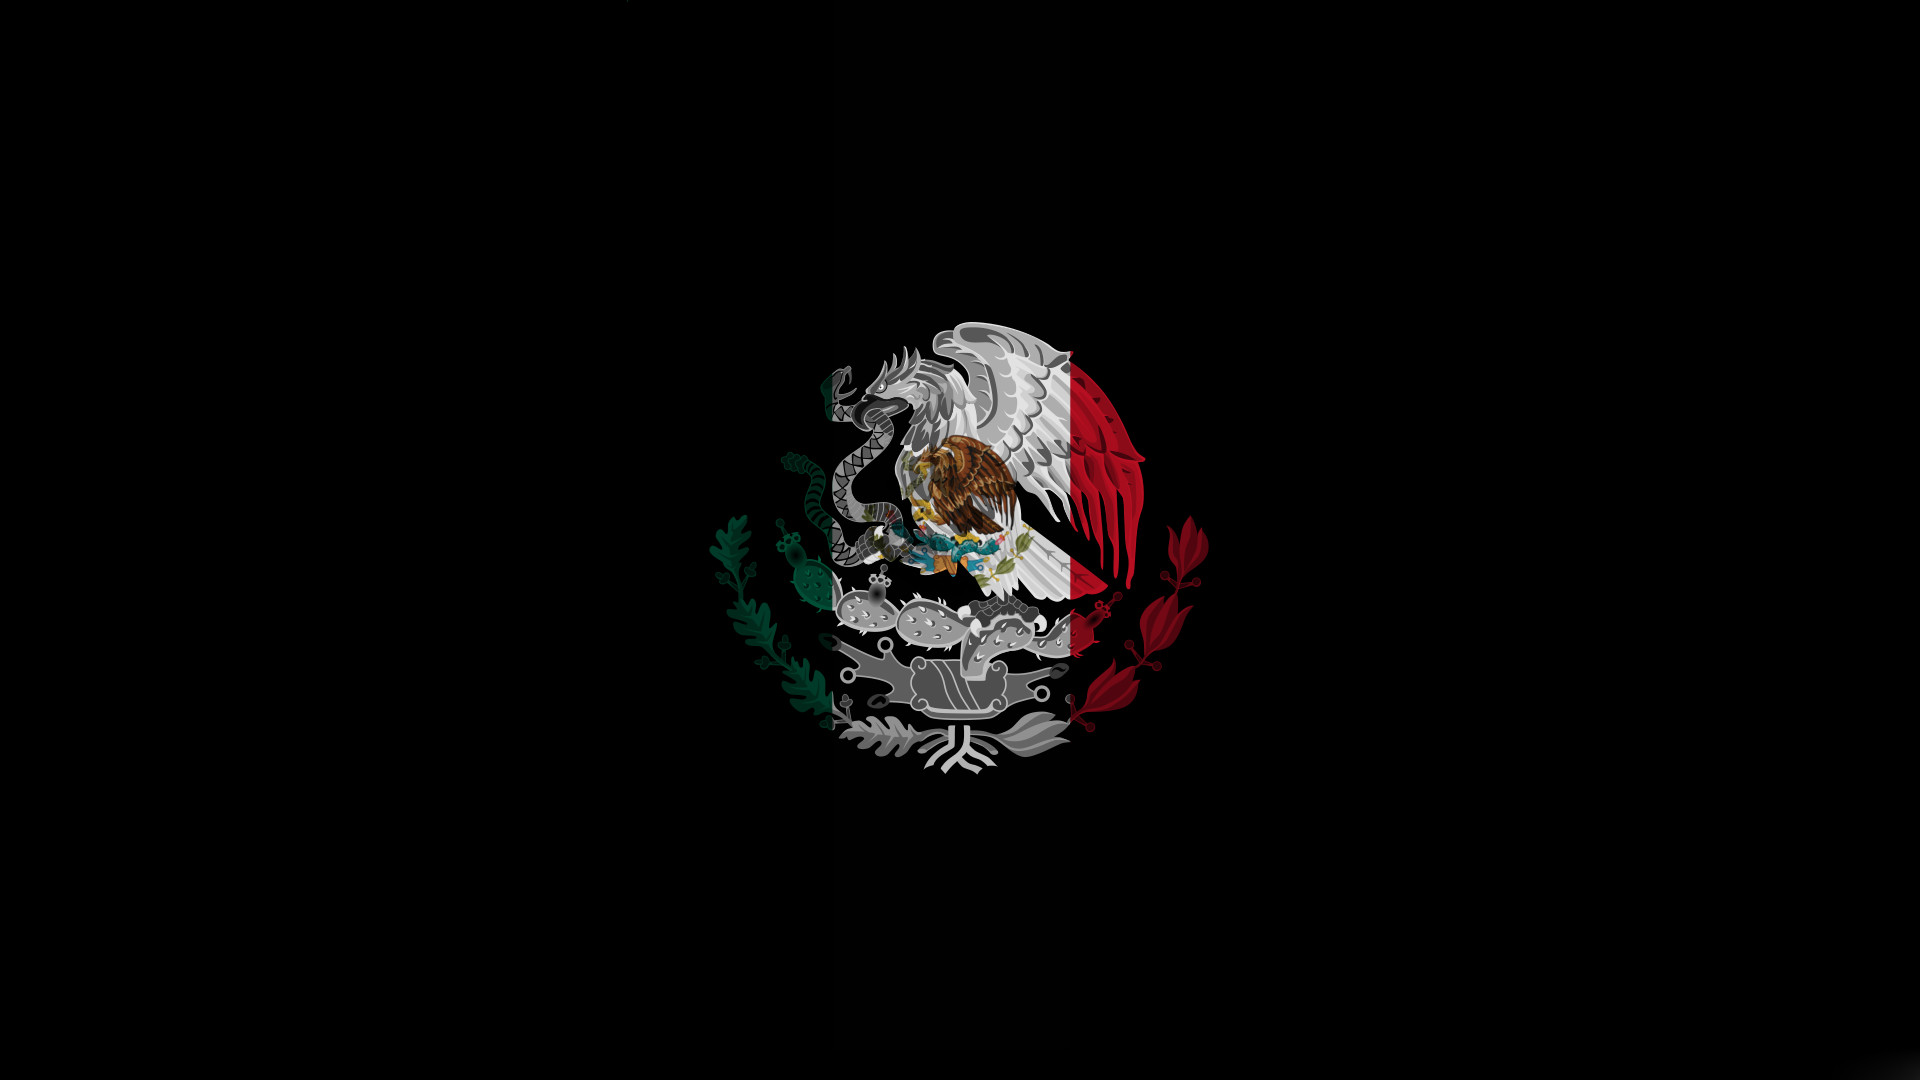 1920x1080 Computer Amazing Mexico Wallpapers, Desktop Backgrounds  px